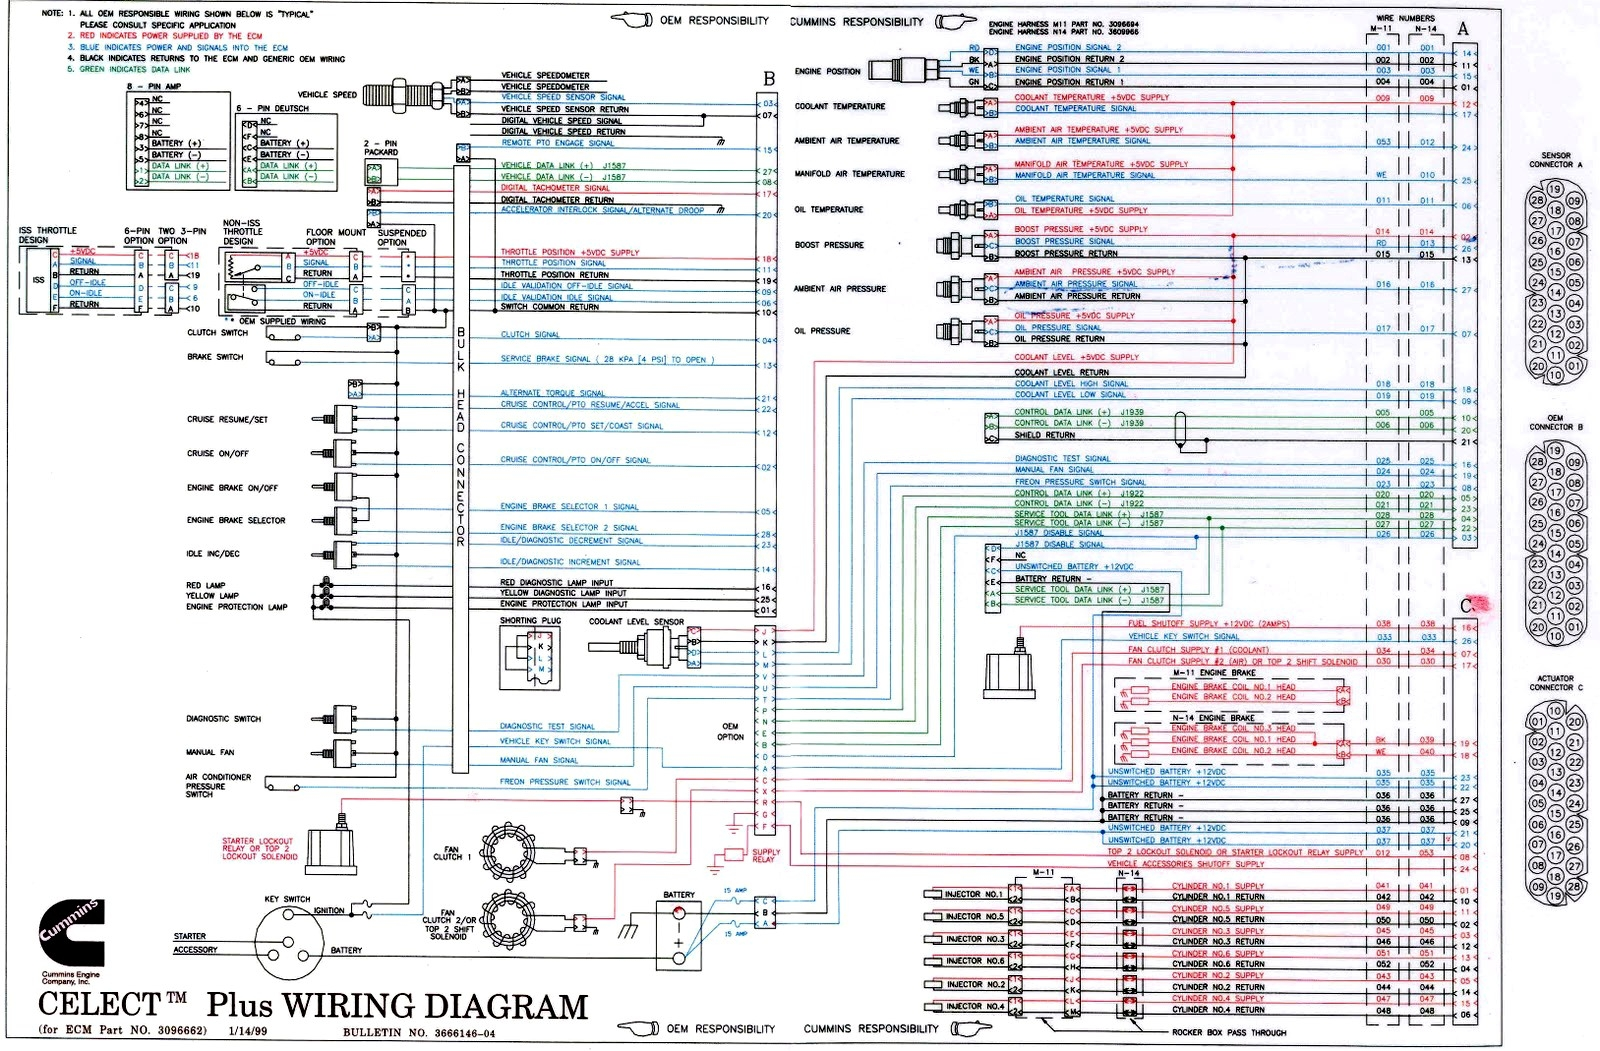 Cummins Celect Ecm Wiring Diagram Cummins N Plus Engine Diagram Circuit Diagram Symbols U Rh Veturecapitaltrust Co Volvo Vnl Truck Wiring L on Volvo 960 Wiring Diagram 1992